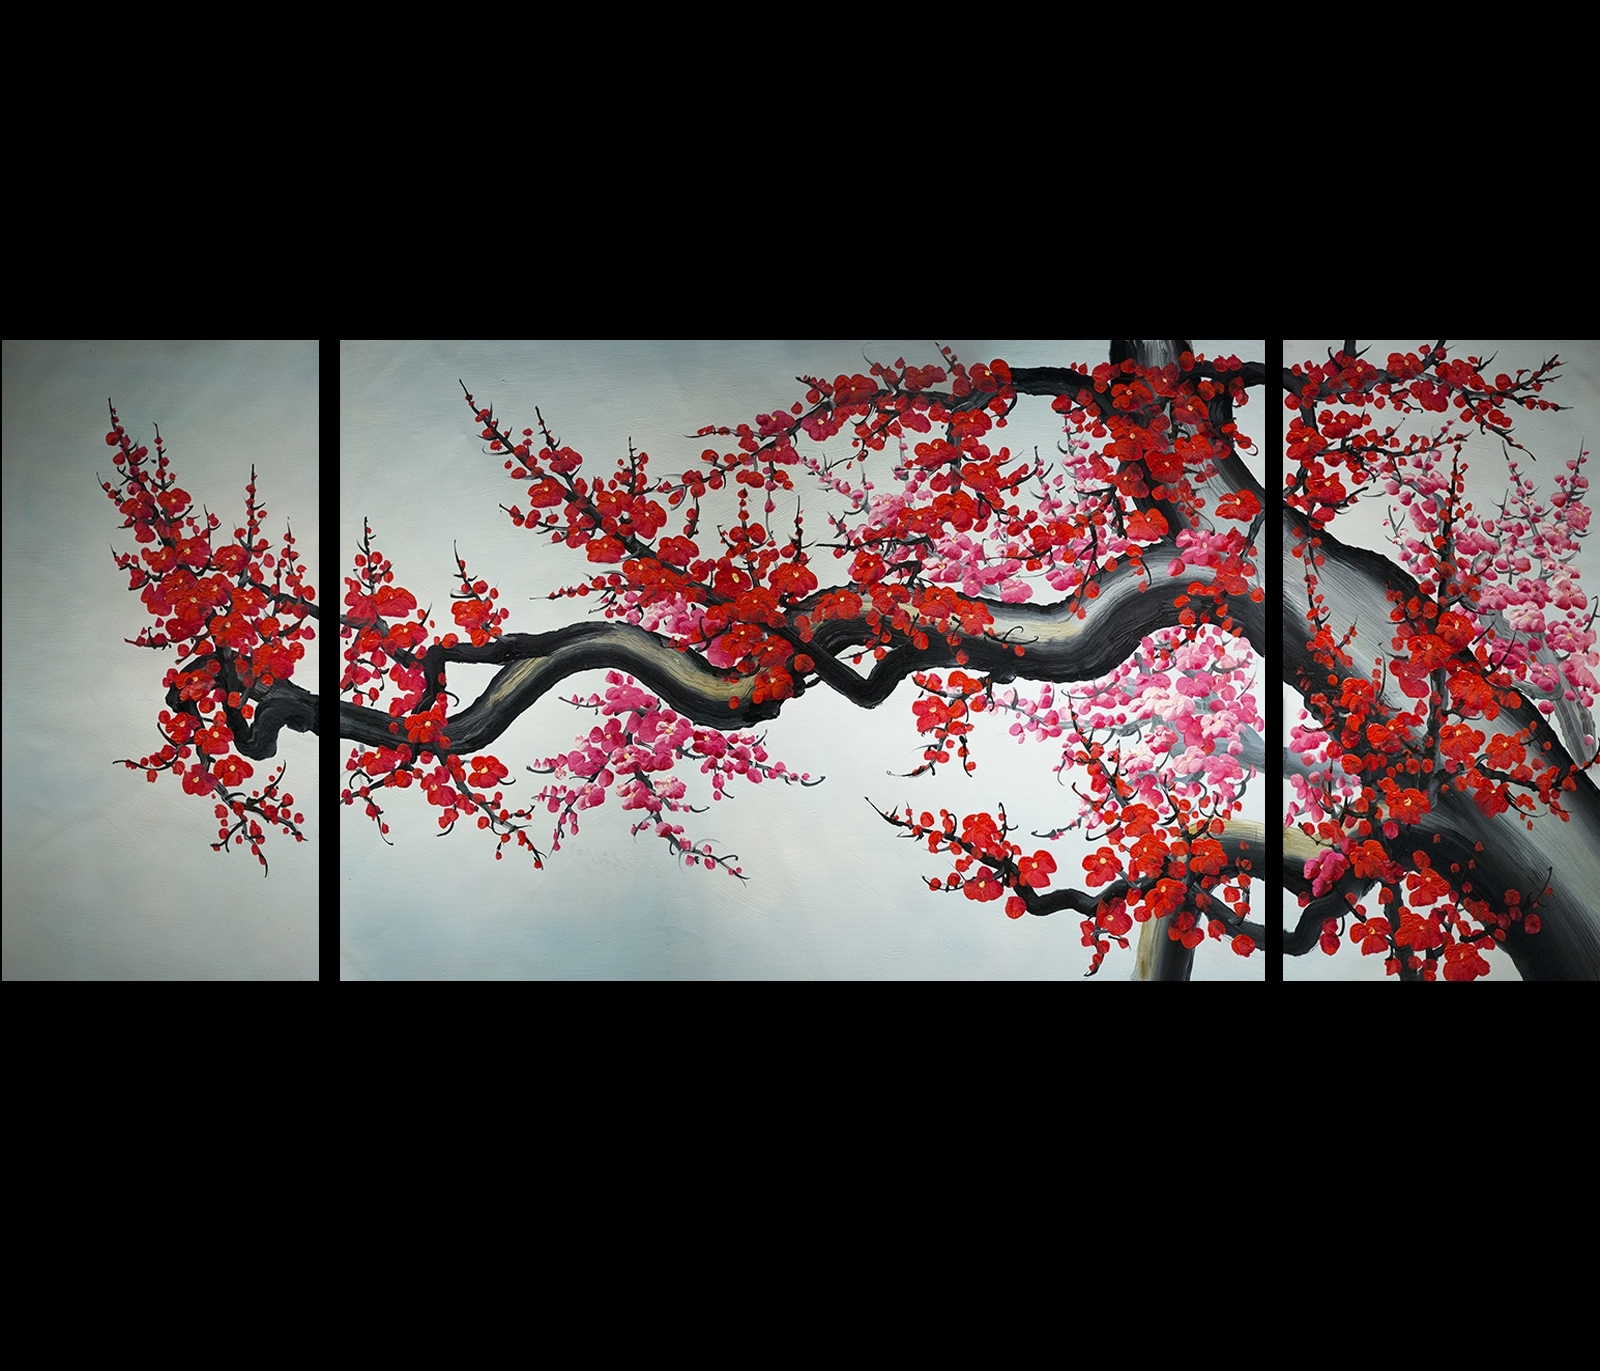 Wall Art Modern Abstract Painting Framed Cherry Blossom Pertaining To Newest Abstract Cherry Blossom Wall Art (Gallery 5 of 20)